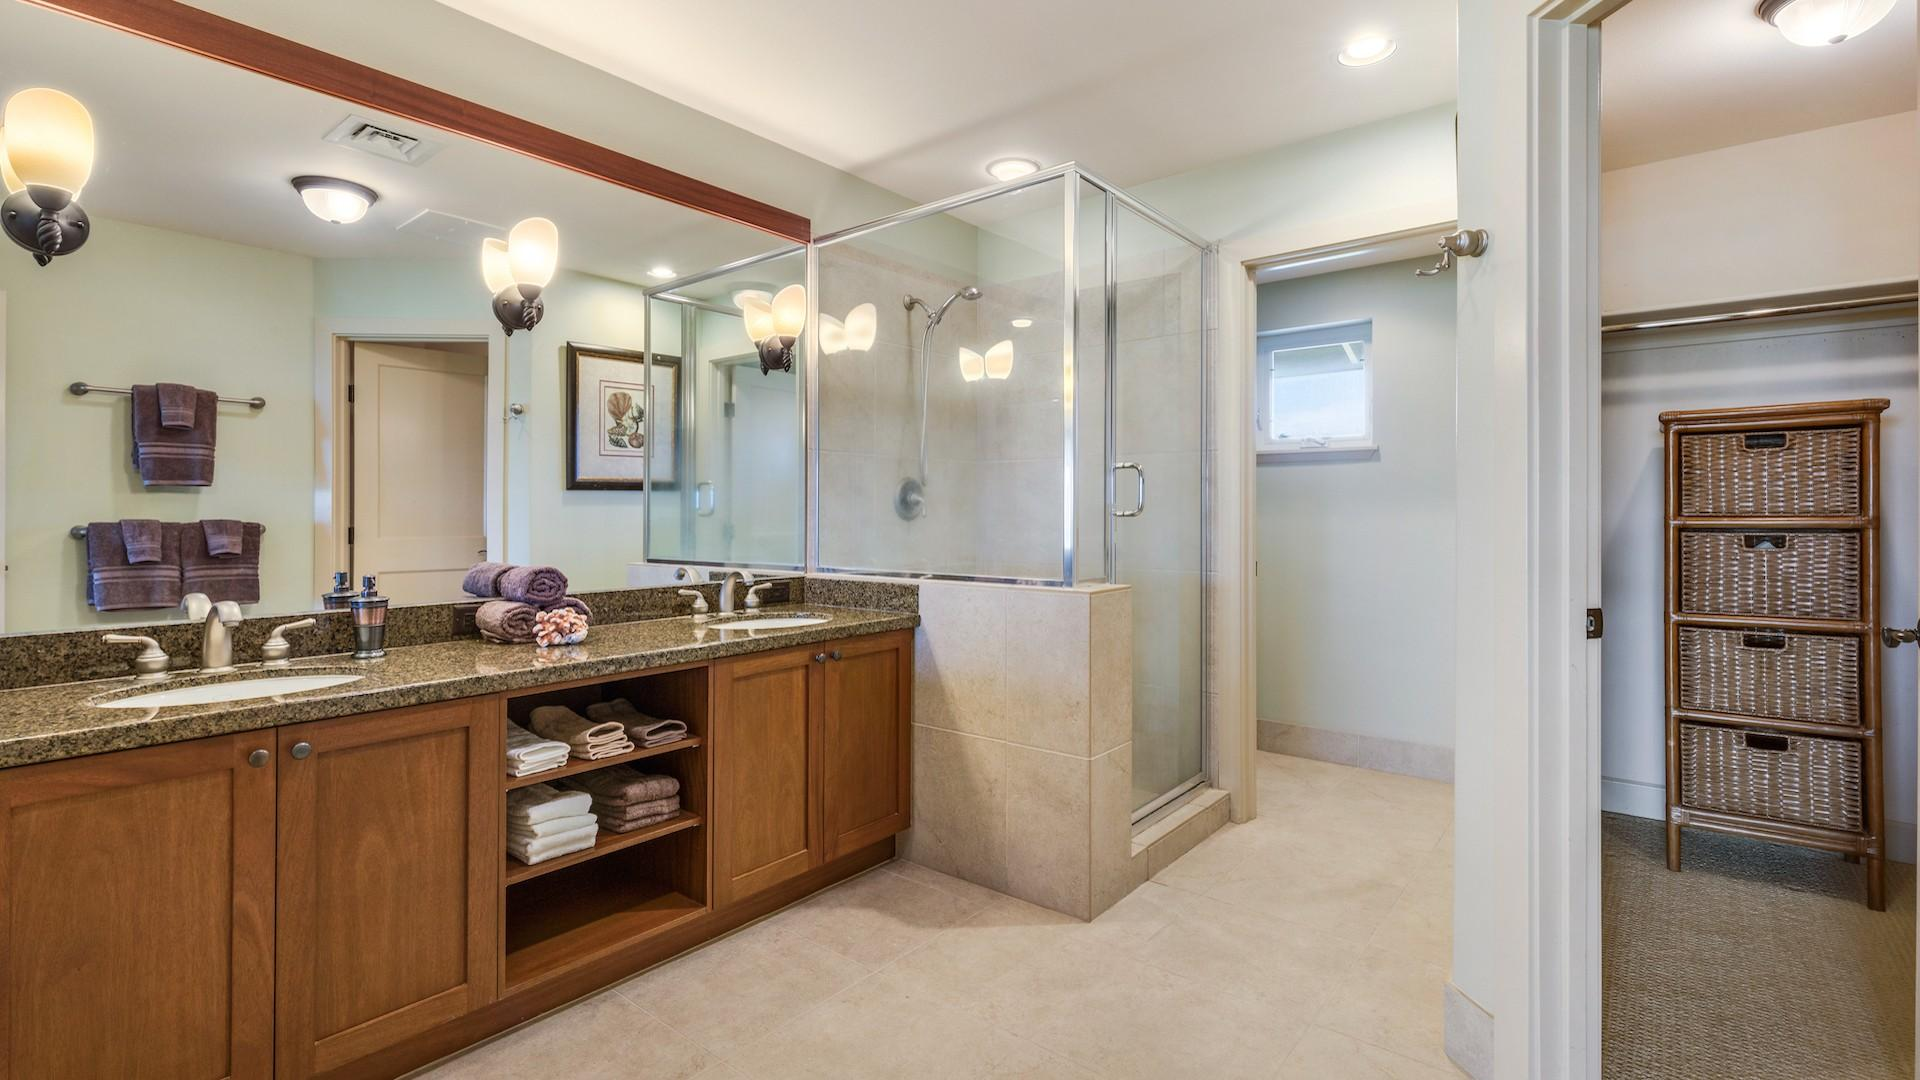 Master bath w/ walk-in shower and dual sinks, separate toilet room and walk-in closet.